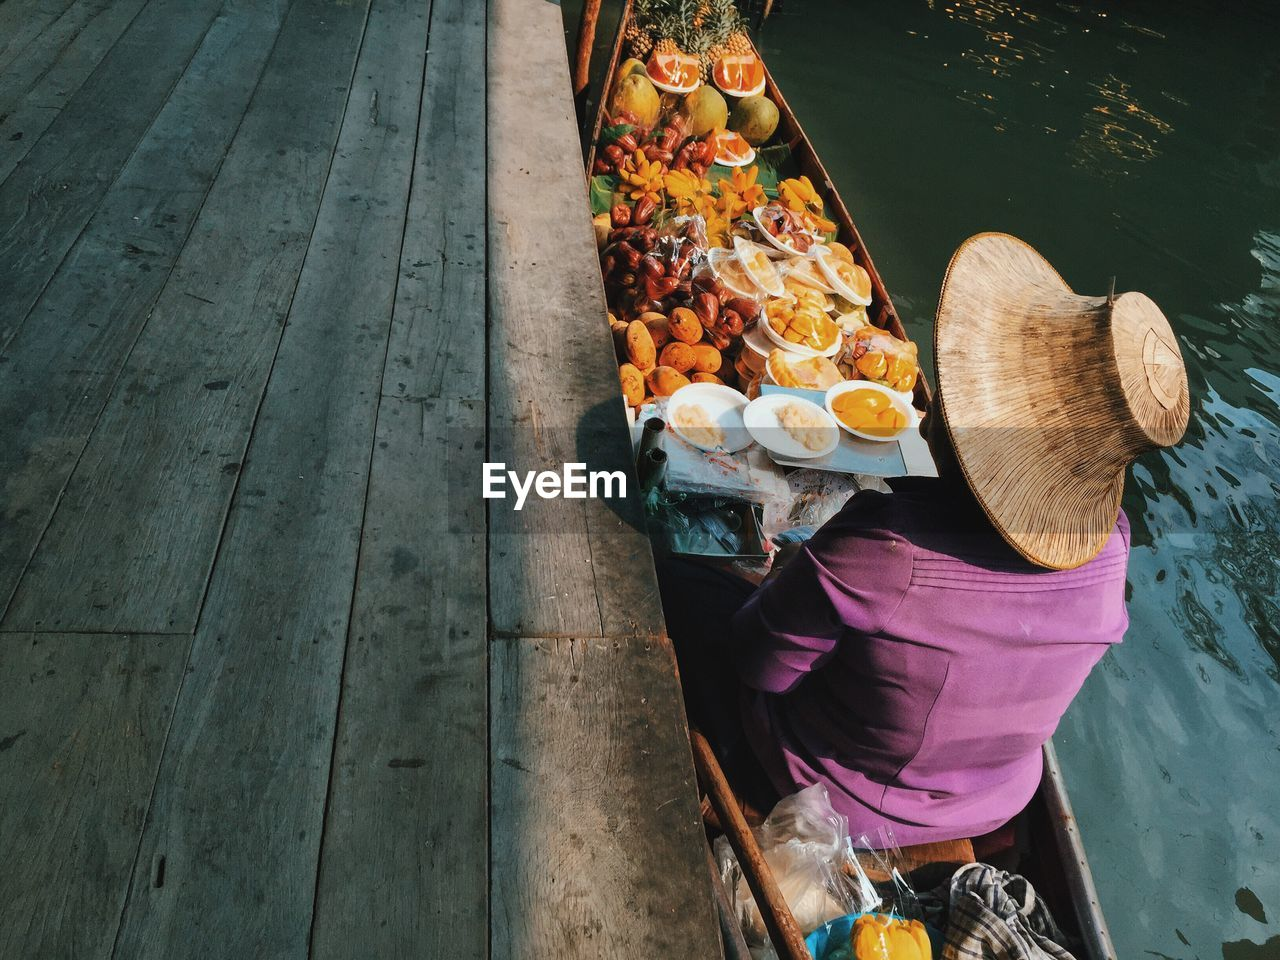 Person in boat with fruits at damnoen saduak floating market